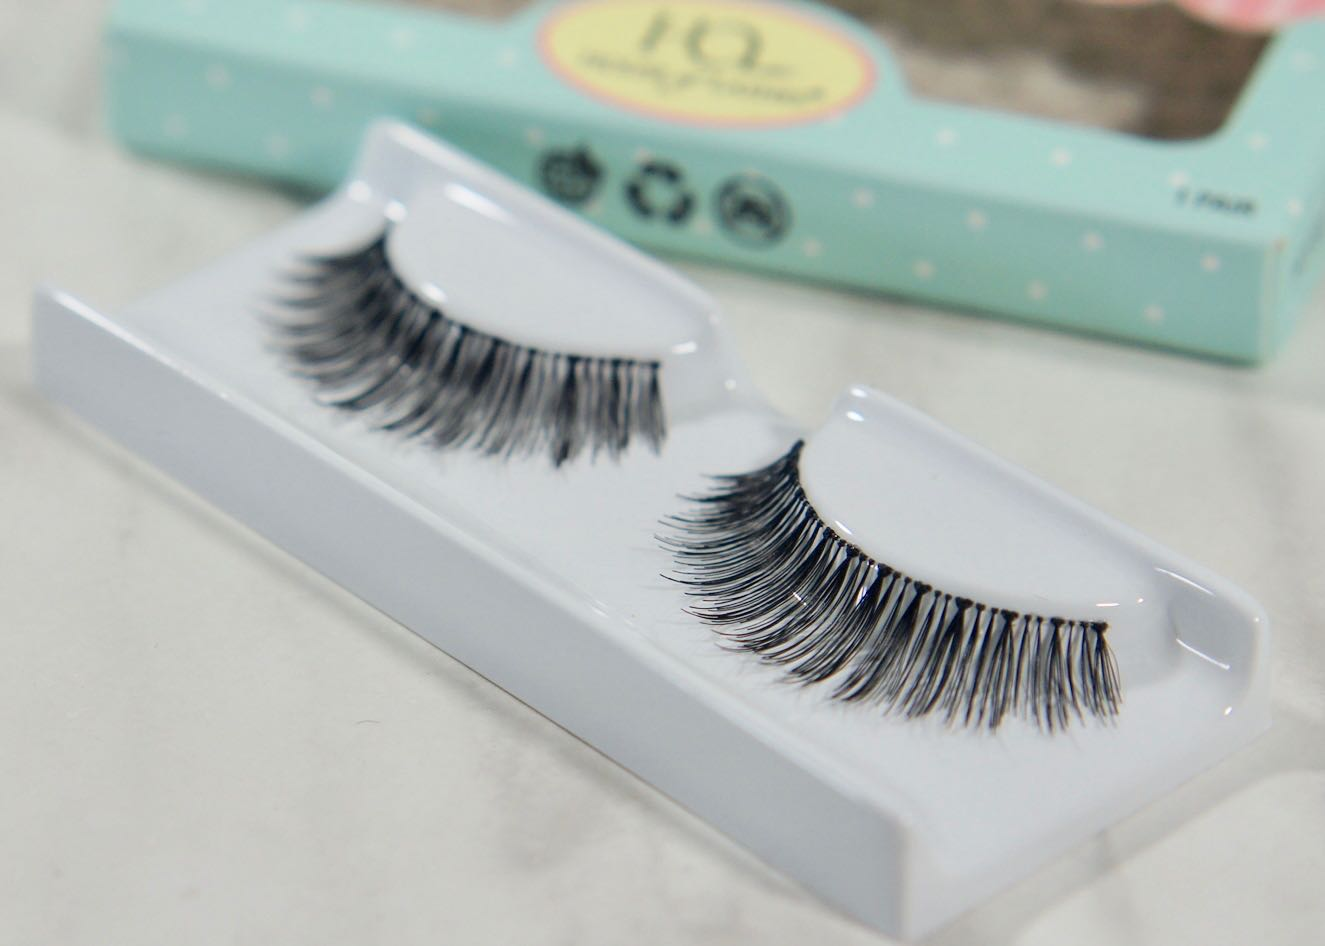 Boxy Charm August 2018 - Life Of The Party-House Of Lashes Bombshell LashesBoxy Charm August 2018 - Life Of The PartyDSC08115.jpg